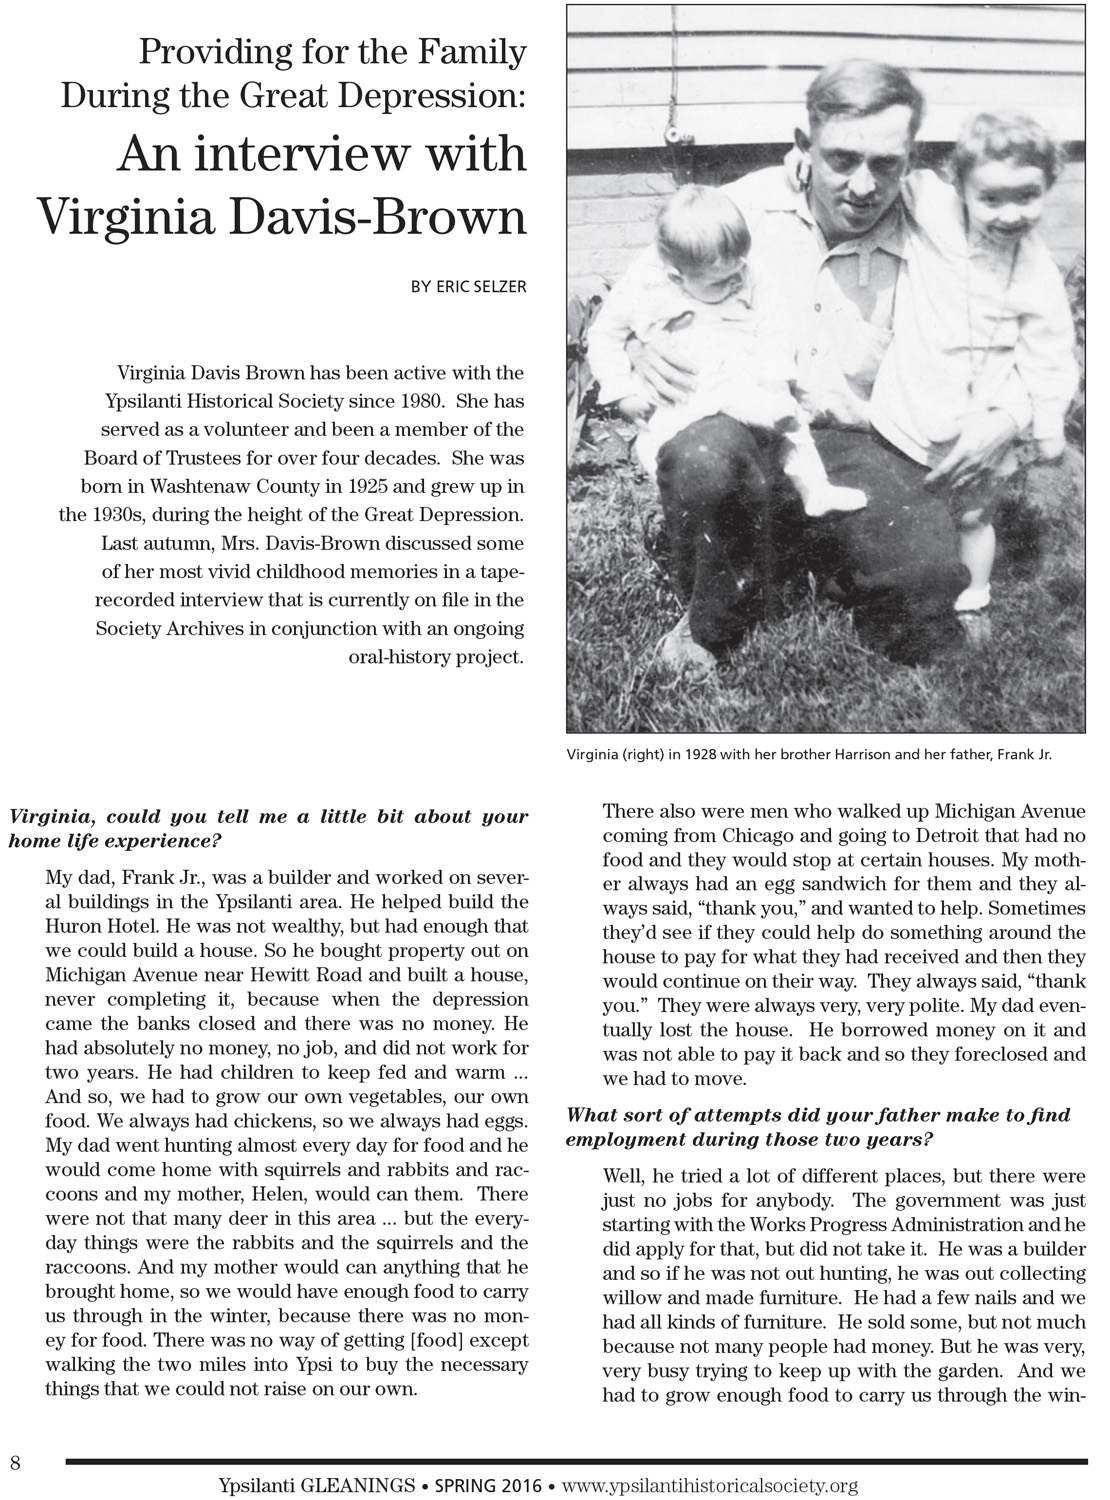 Providing for the Family During the Great Depression: An interview with Virginia Davis-Brown image